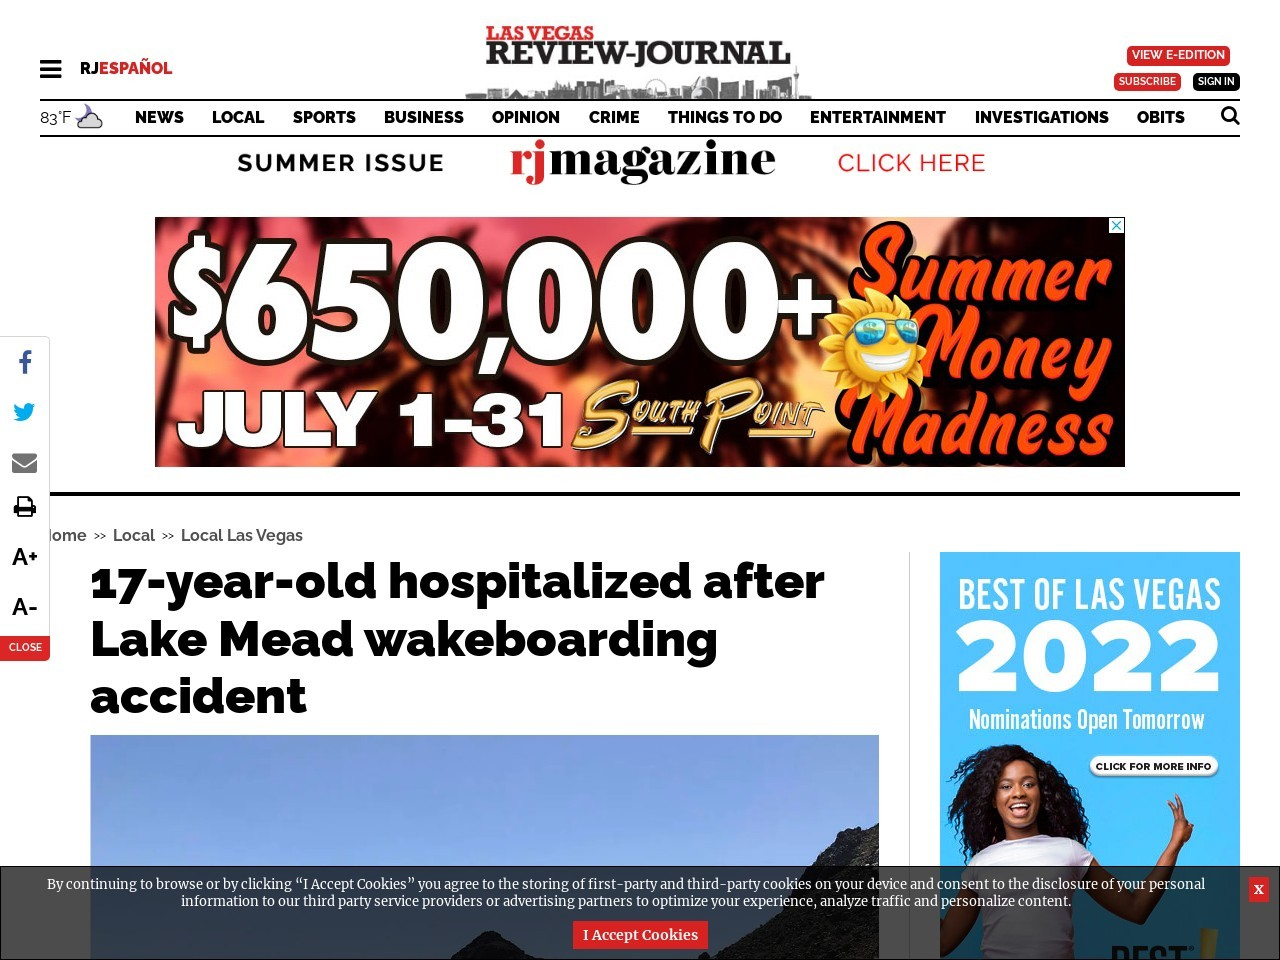 17-year-old hospitalized after Lake Mead wakeboarding accident